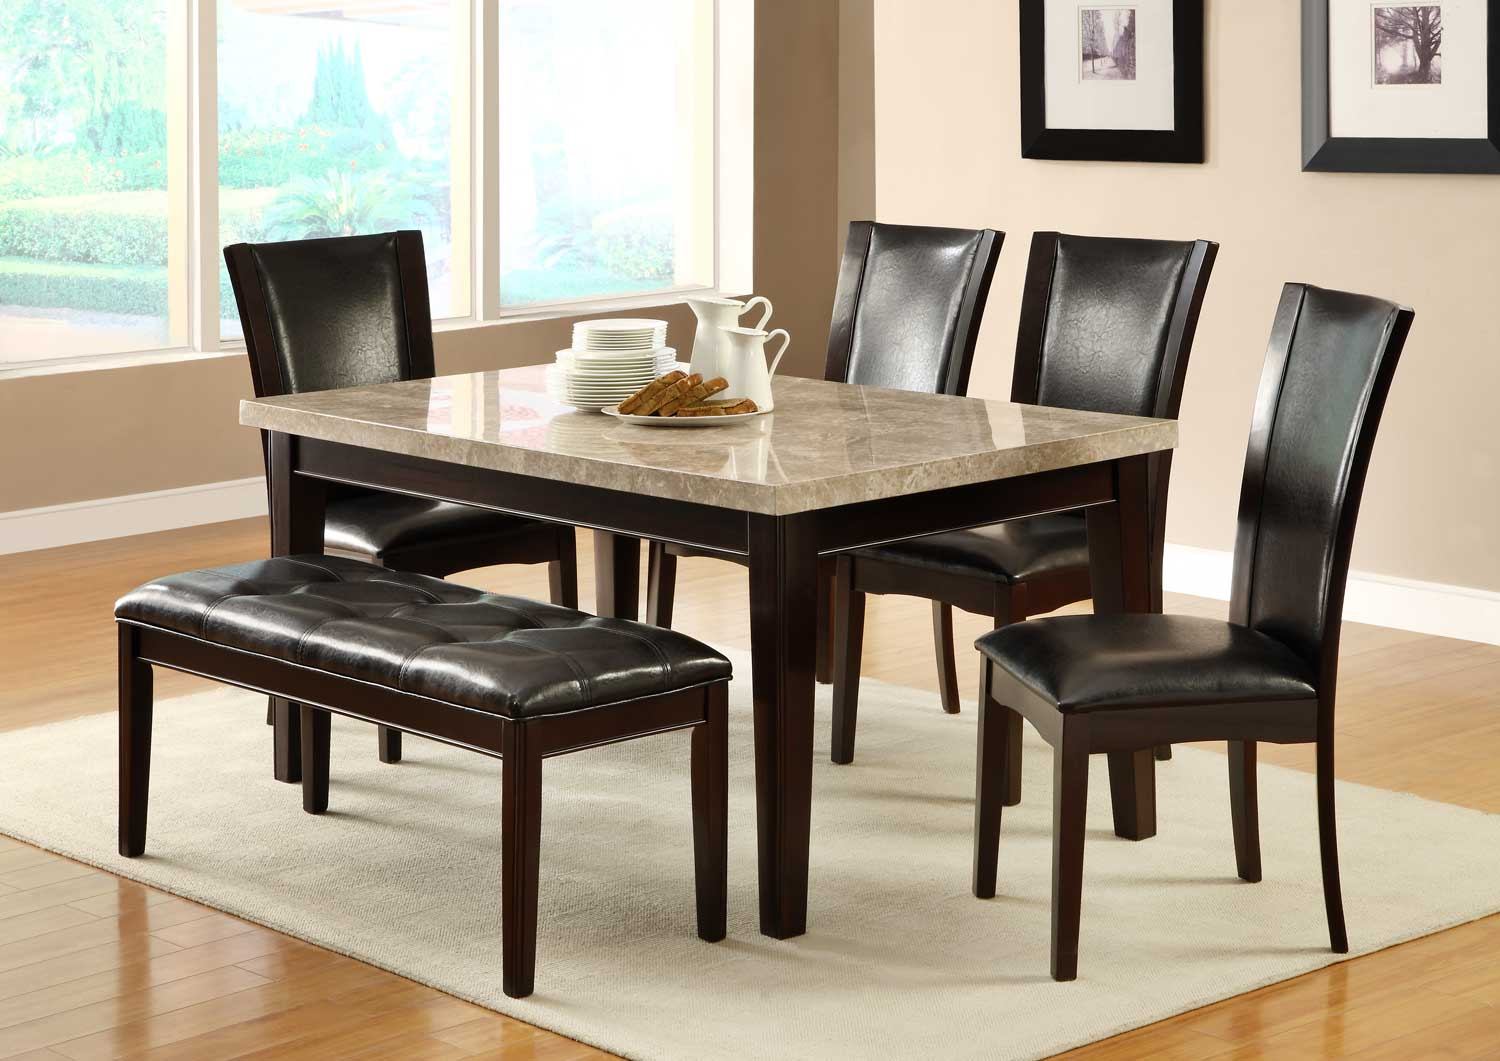 H2529 MARBLE DINING SET